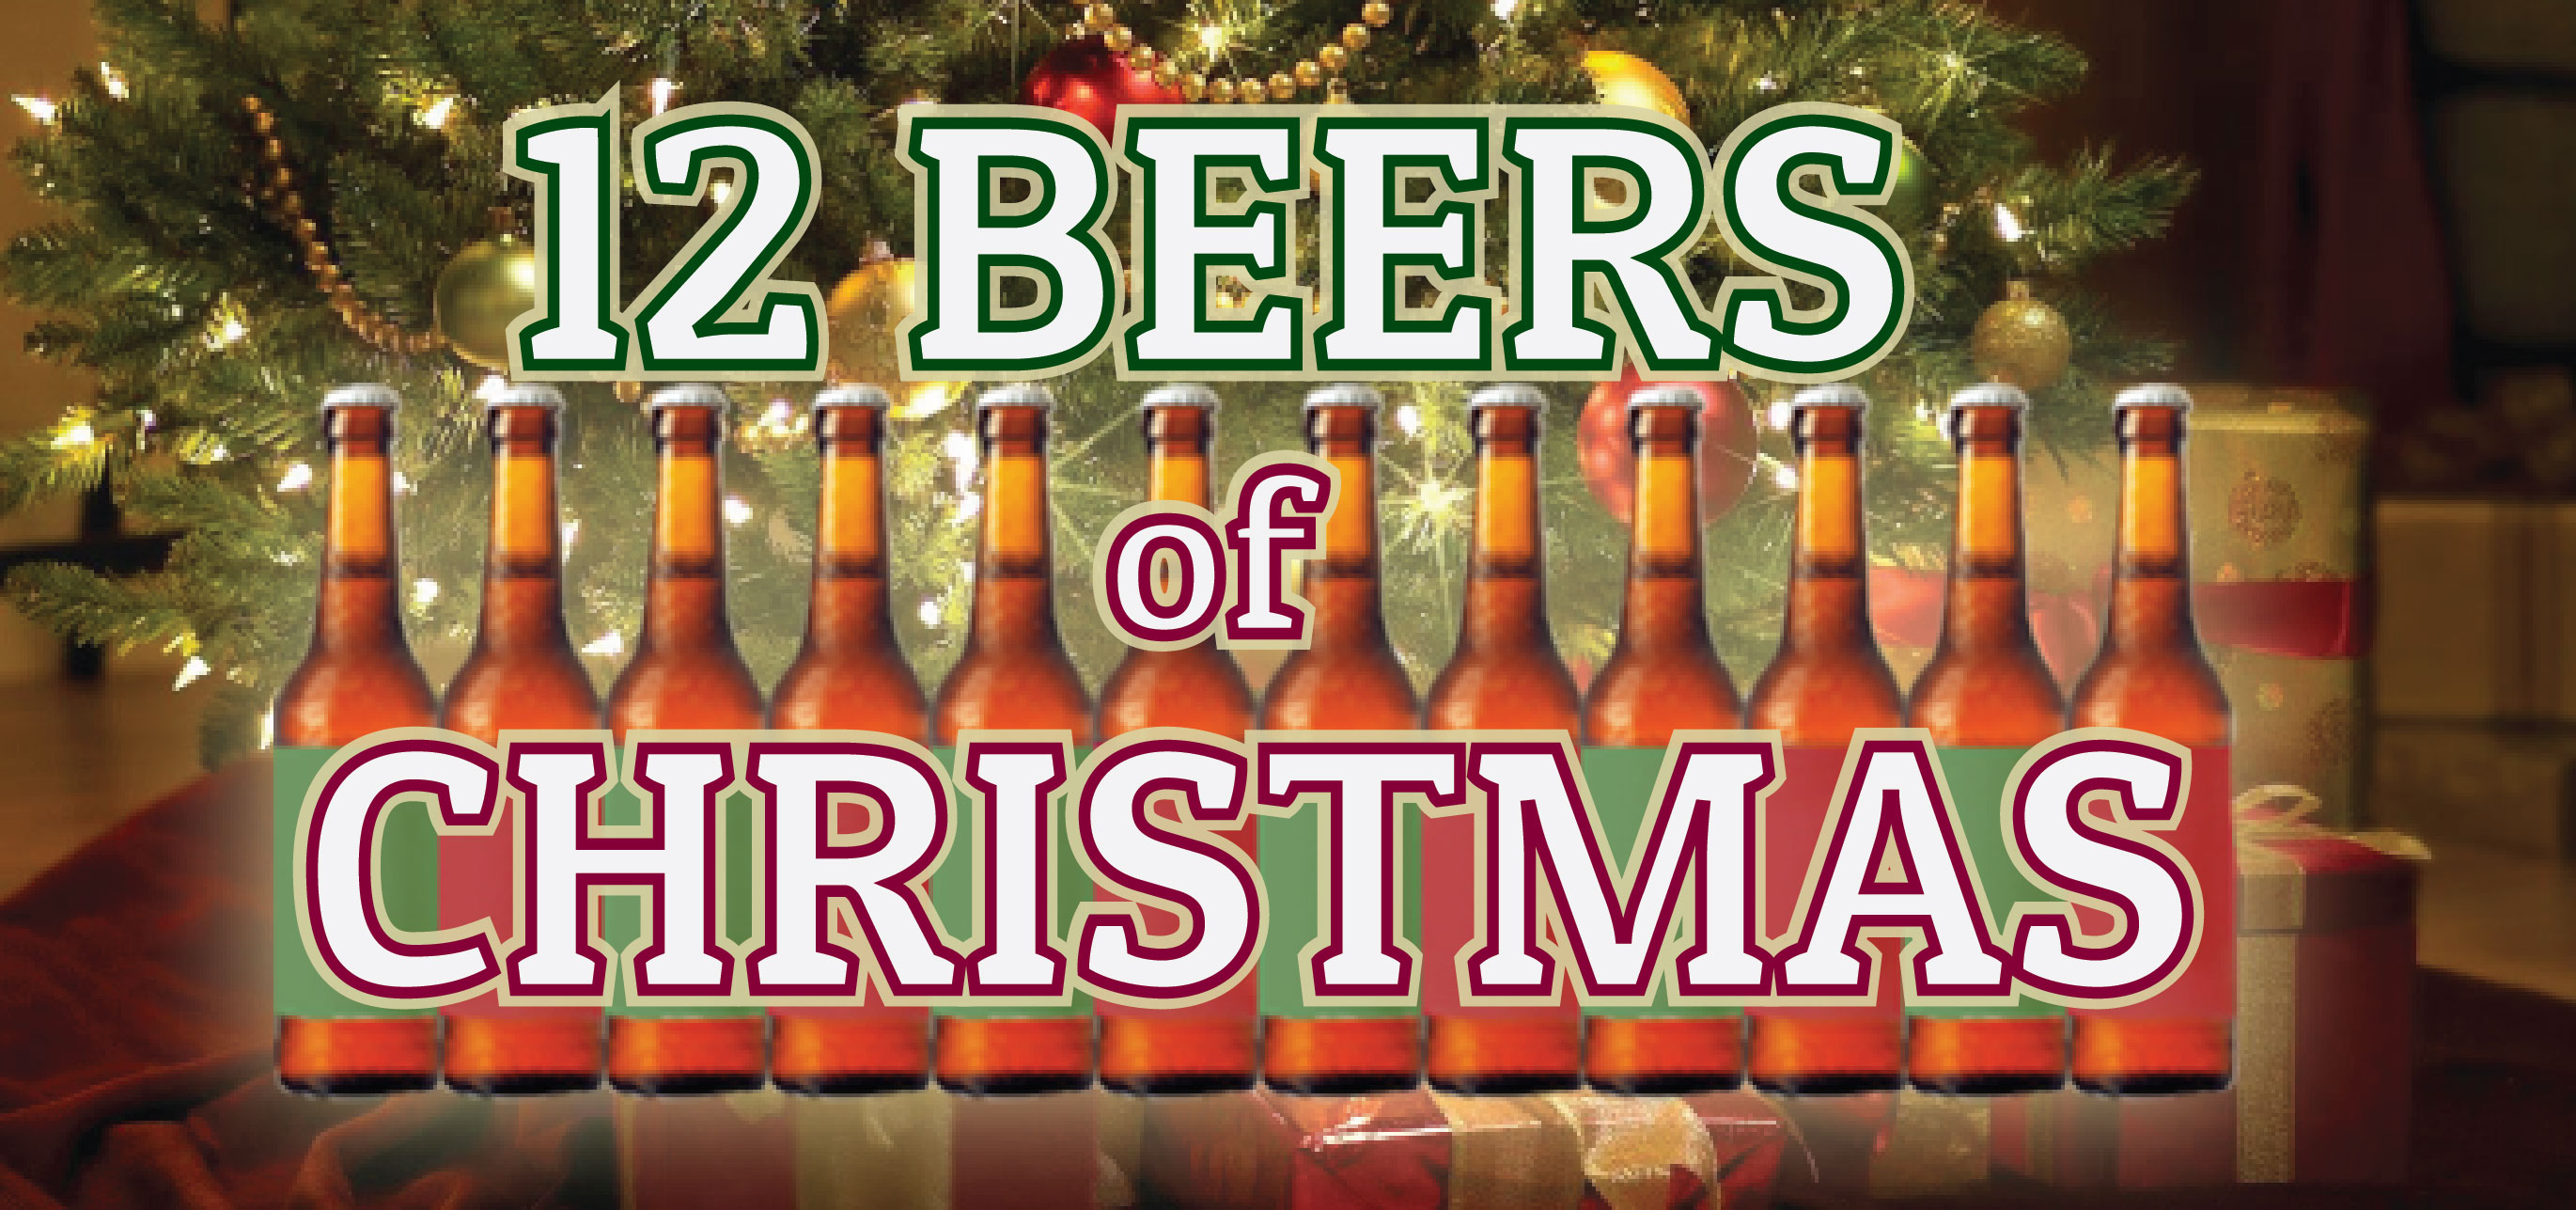 12 beers of christmas